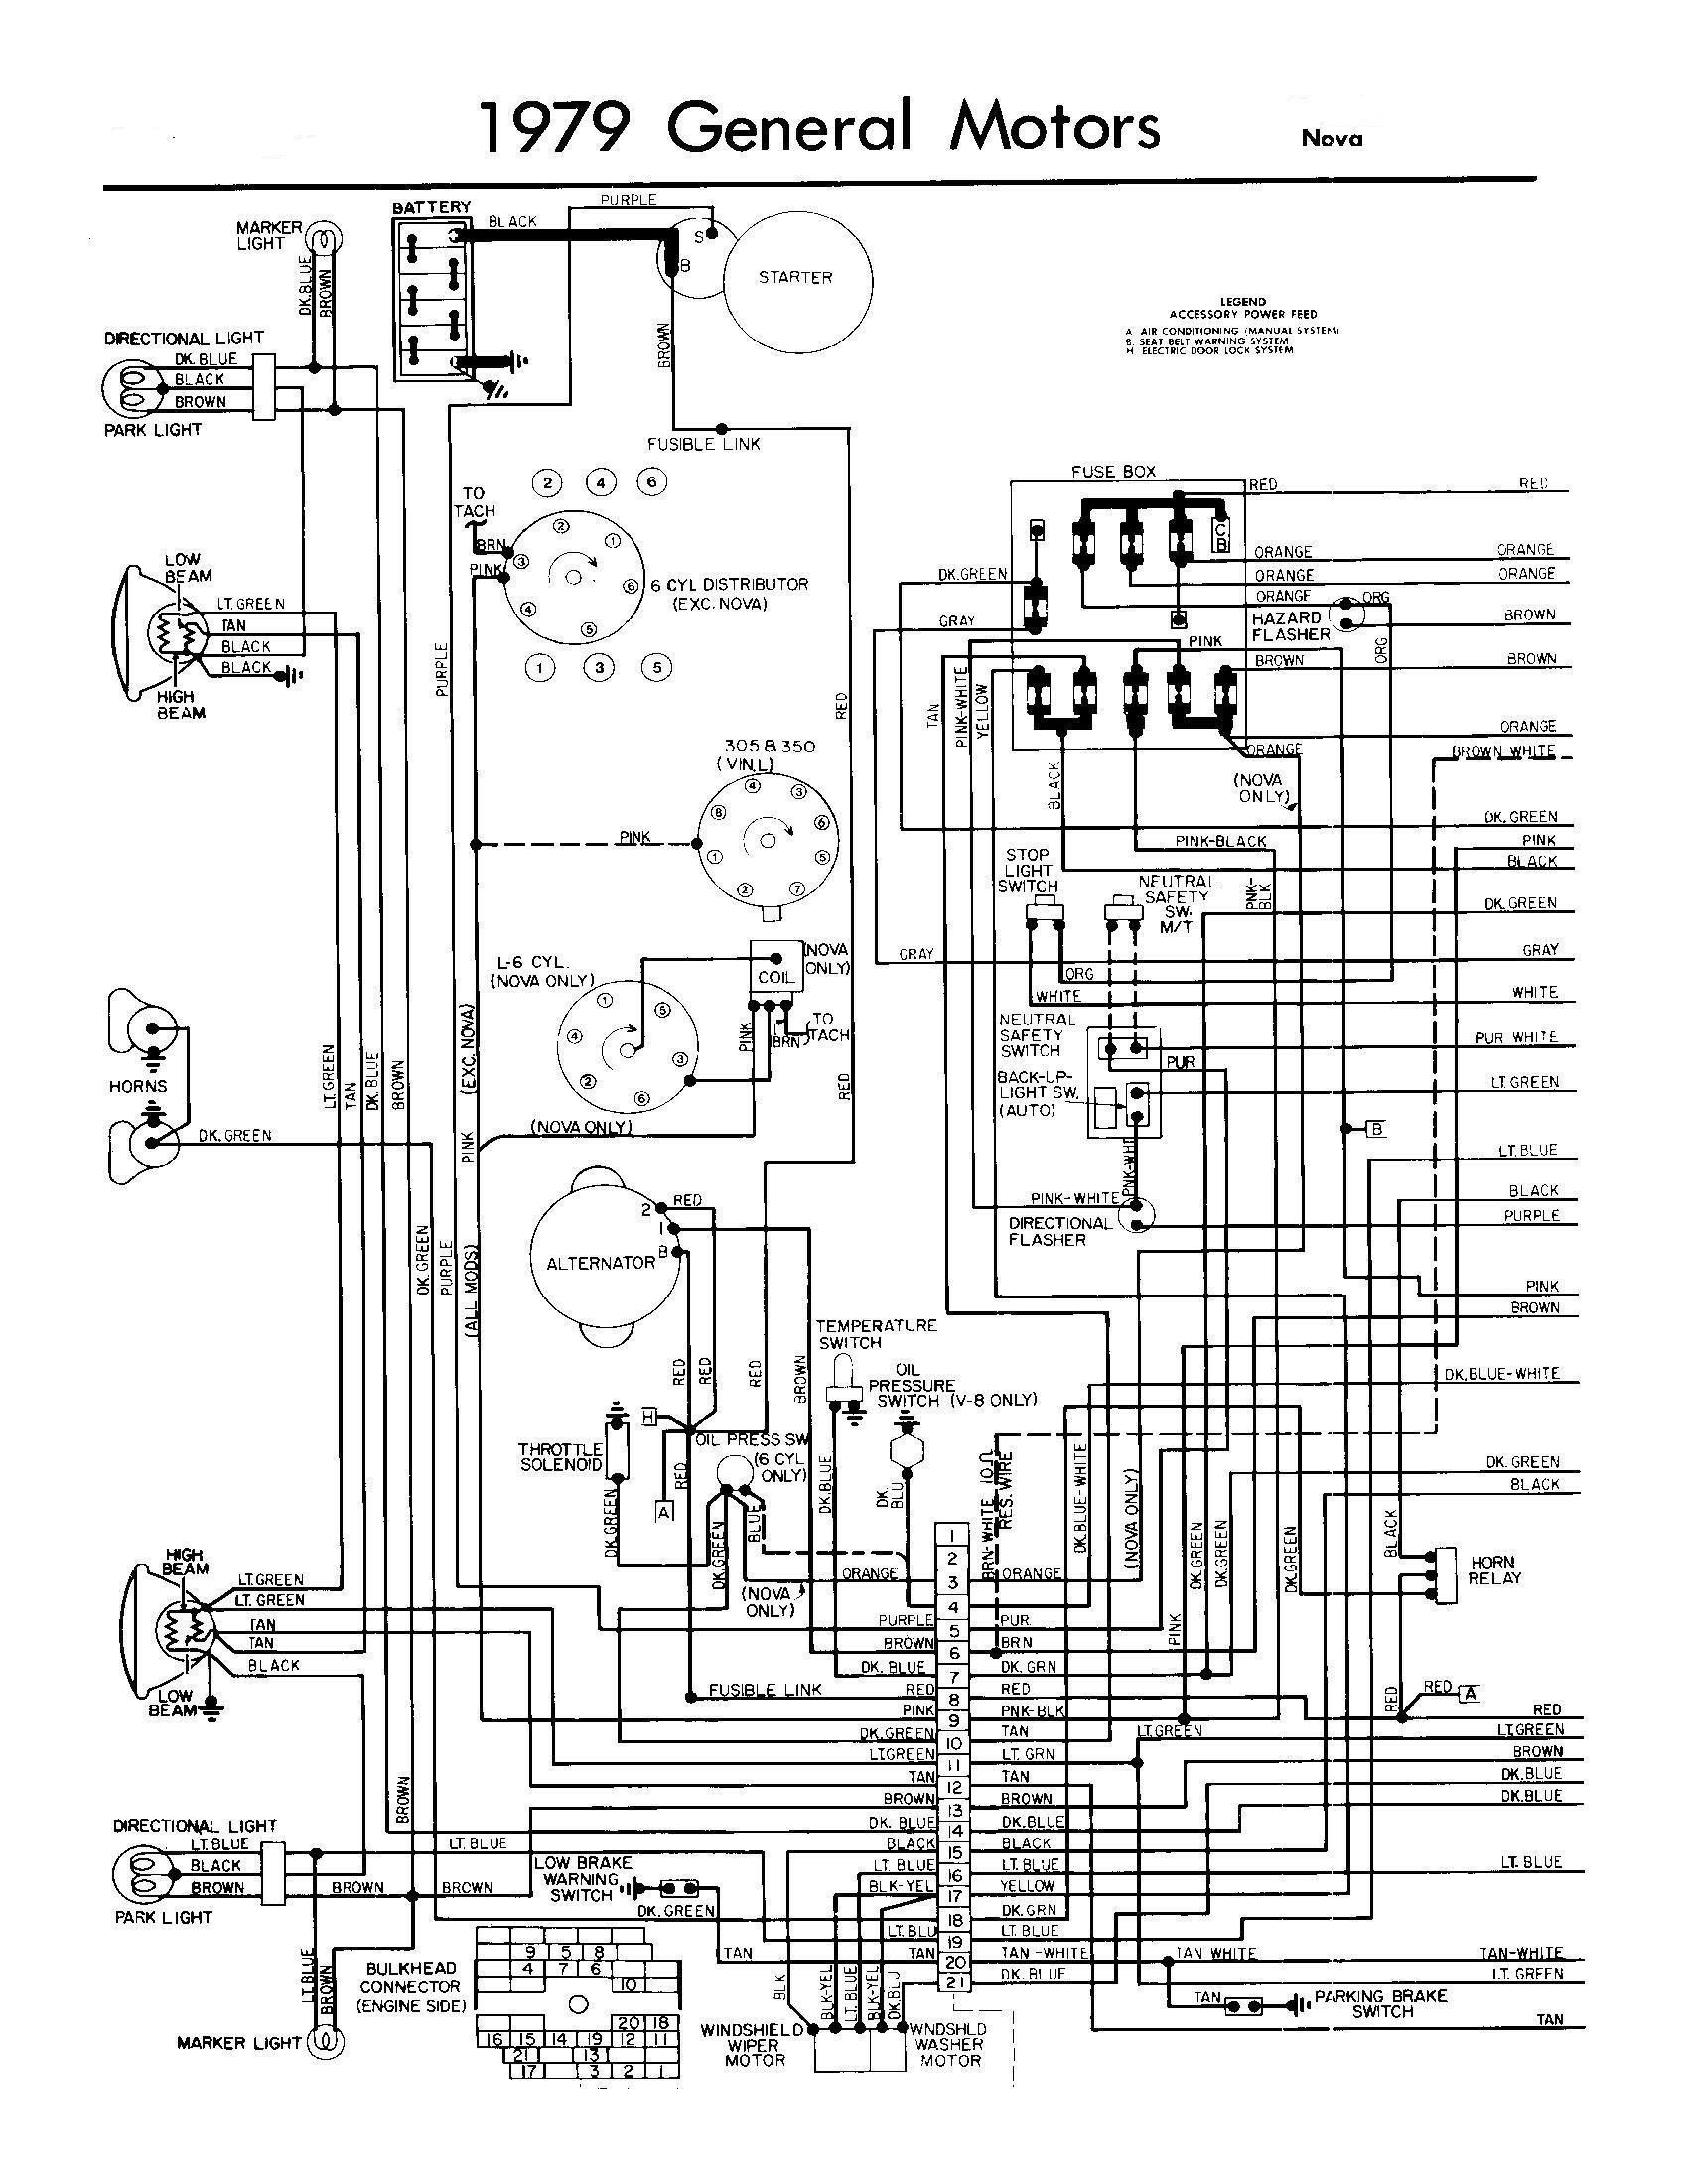 1985 ford f 150 wiring diagram 85 ford wiring diagram wiring diagram  85 ford wiring diagram wiring diagram